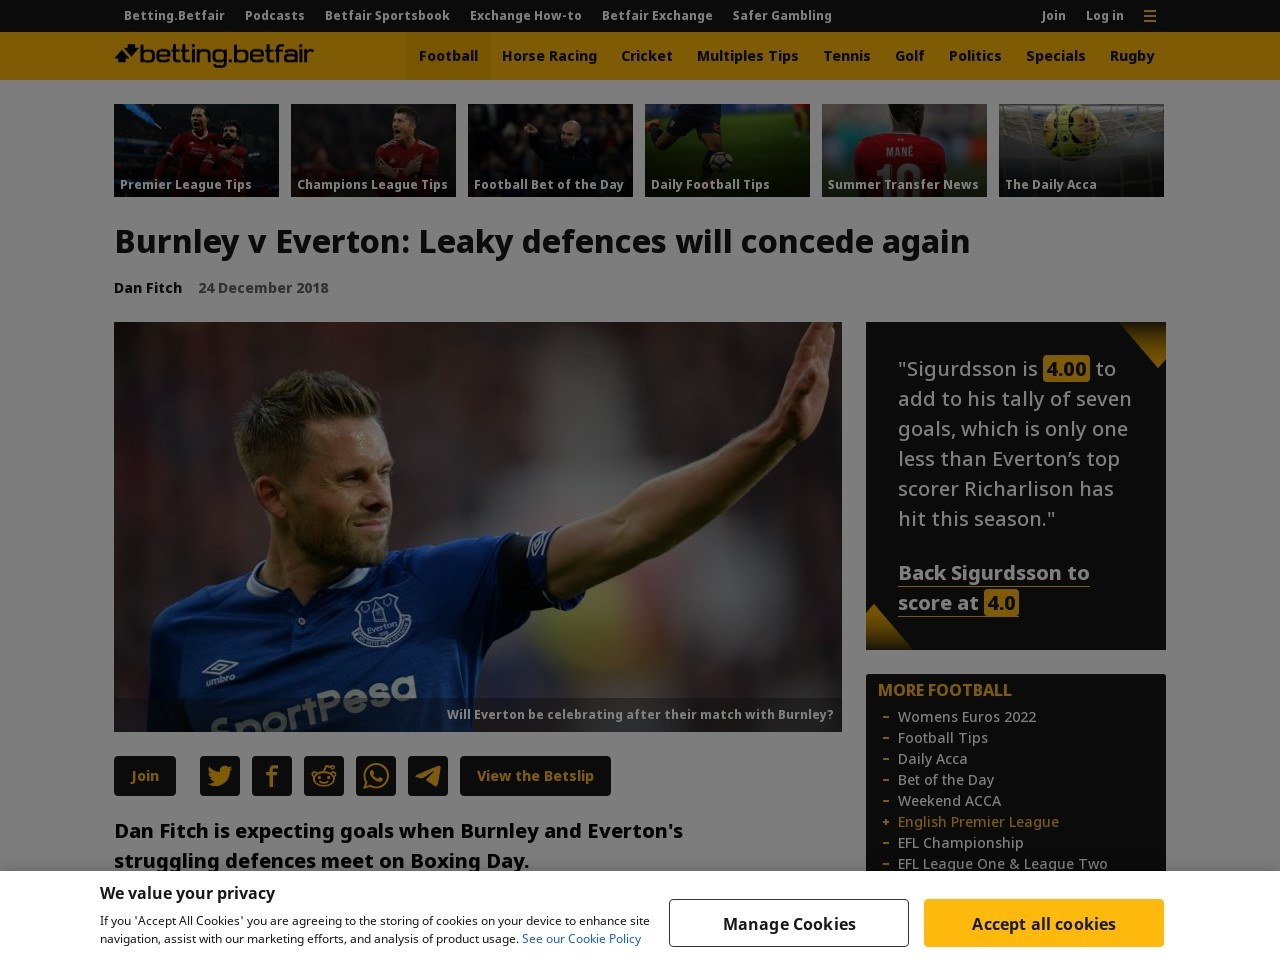 Burnley v Everton: Leaky defences will concede again